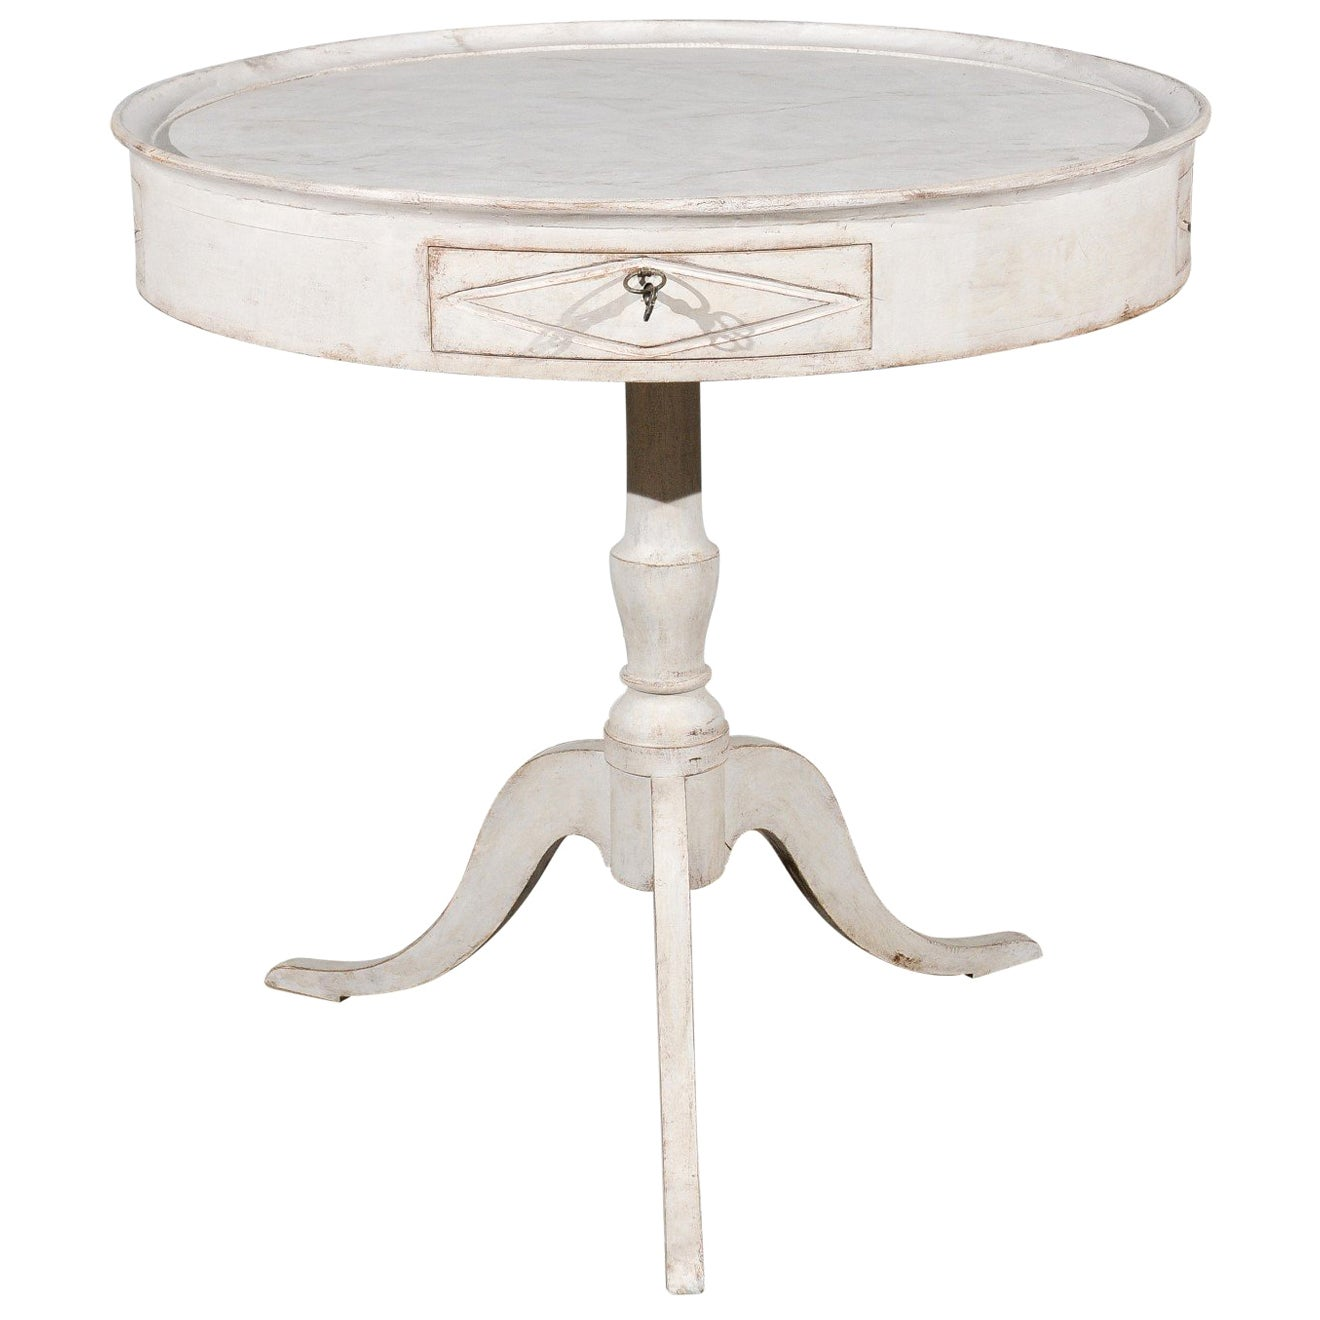 Swedish 1880s Painted Round Pedestal Table with Marbleized Tray Top and Drawers